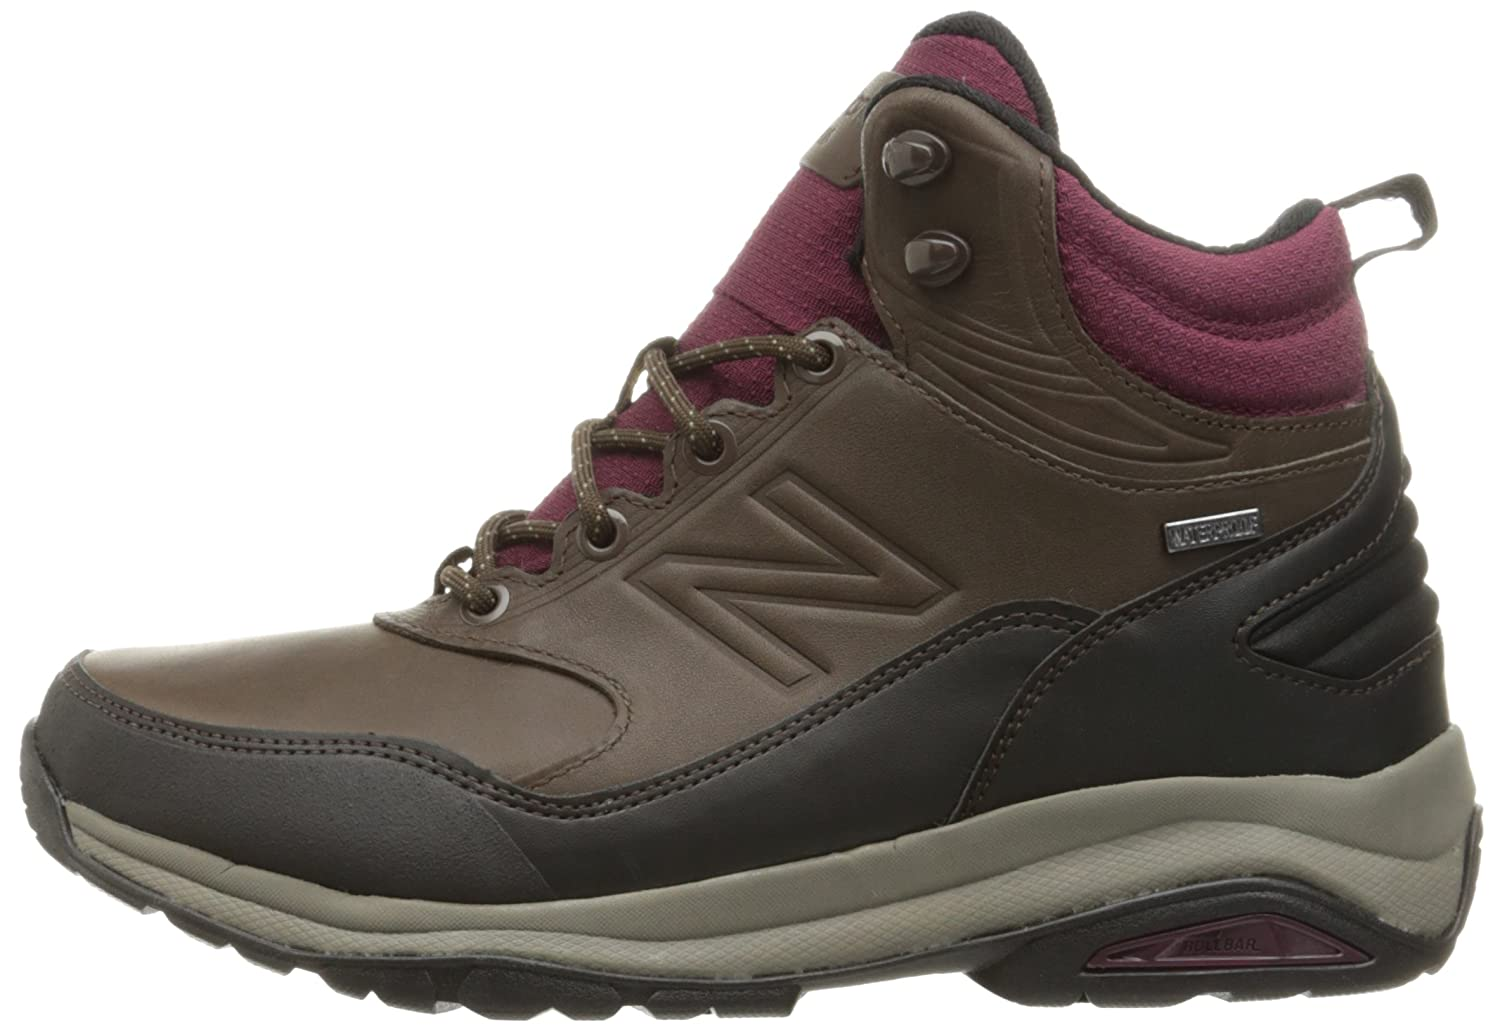 New Balance Women's WW1400v1 Walking Shoe B019DLAMMC 10.5 B(M) US|Dark Brown